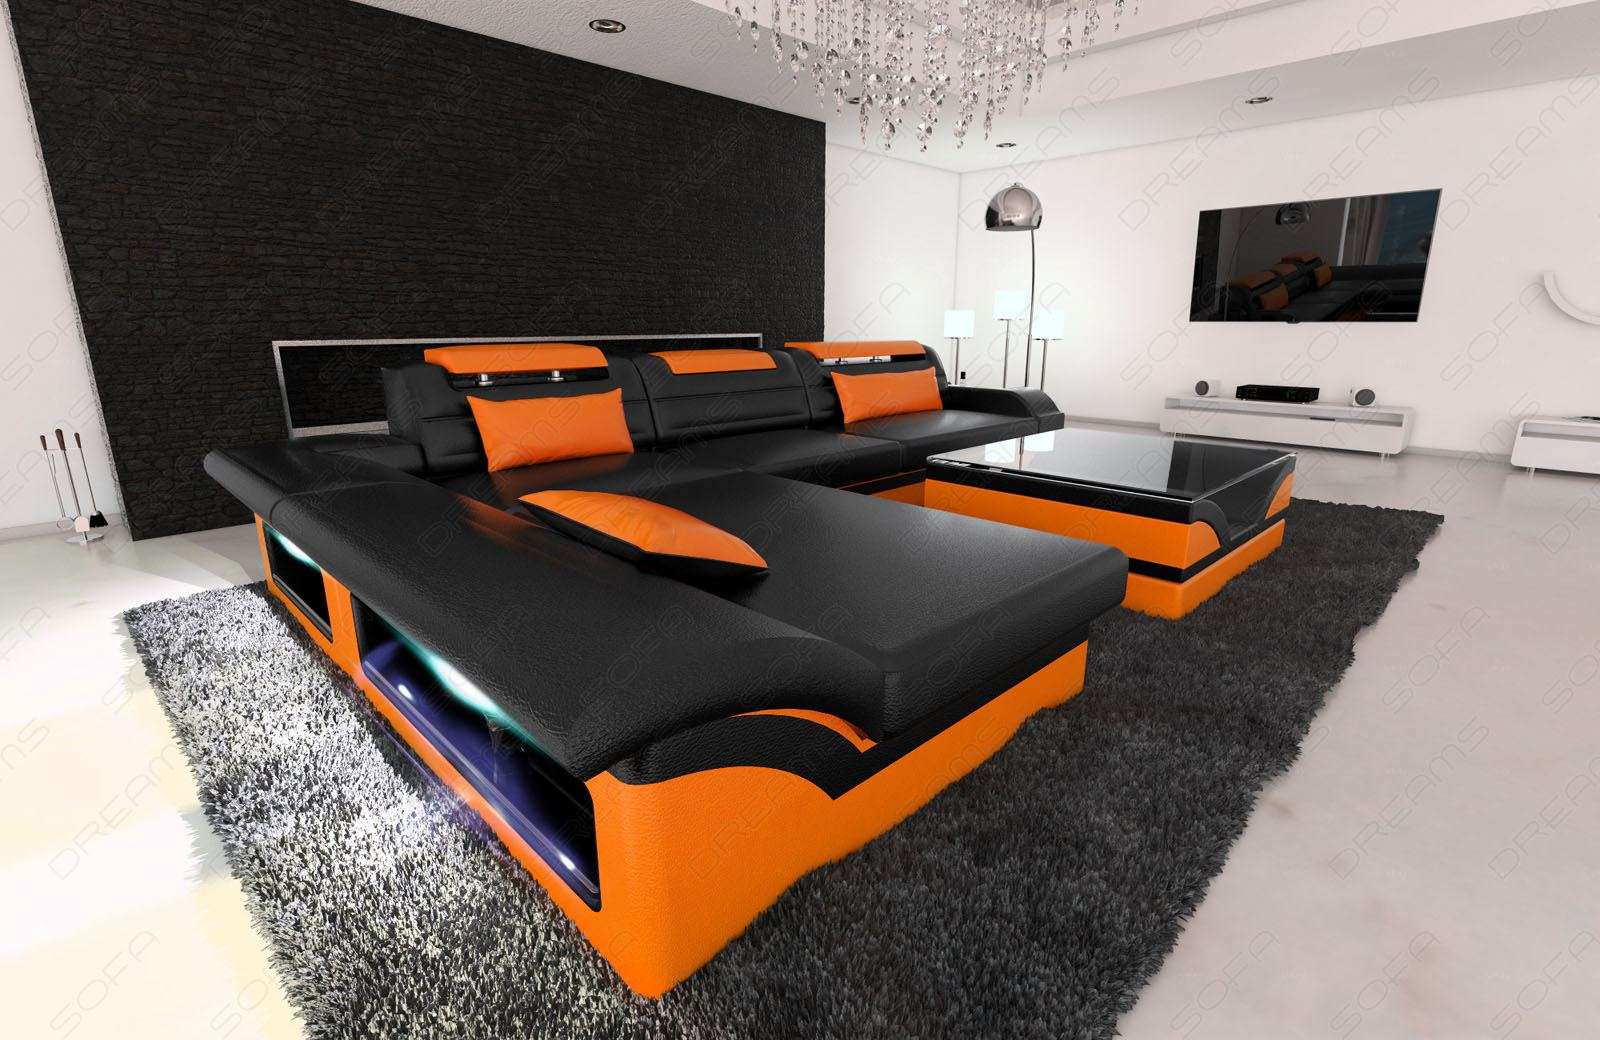 design sectional sofa monza l shaped leathersofa with led. Black Bedroom Furniture Sets. Home Design Ideas